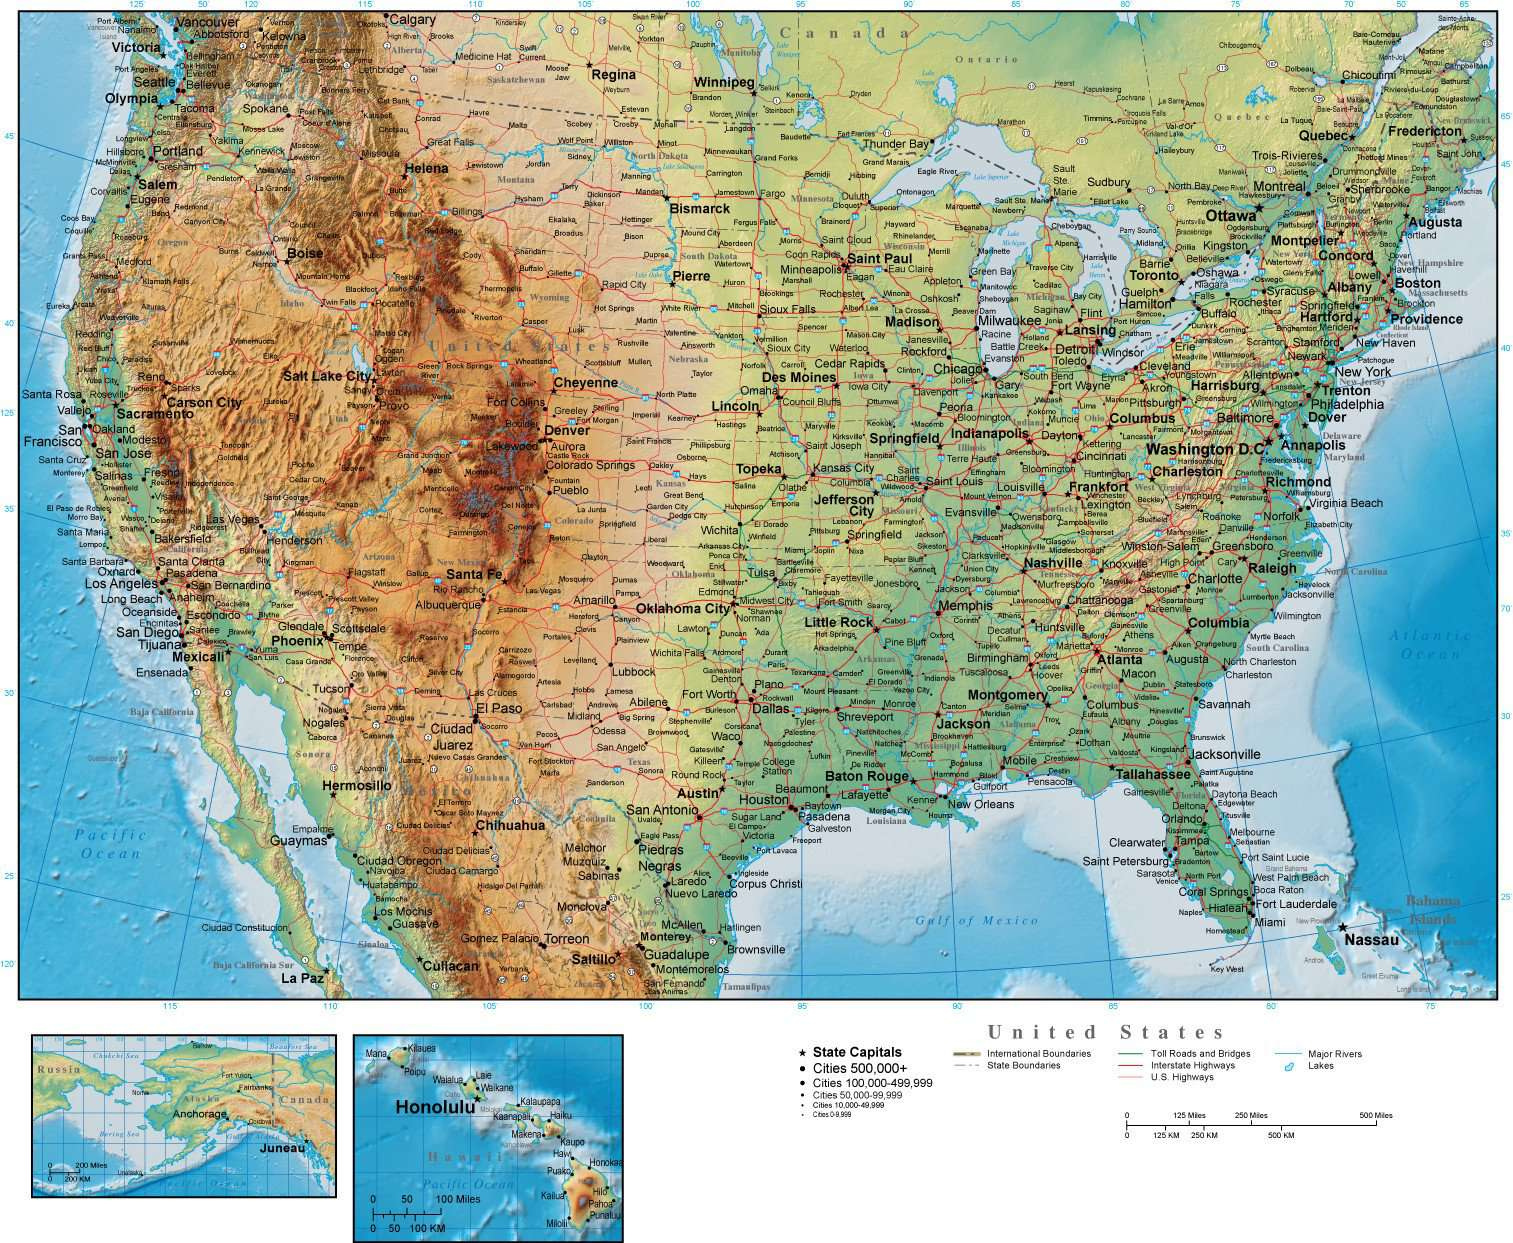 Real Map Of The United States.Digital Page Size Usa Map With Land And Ocean Floor Terrain